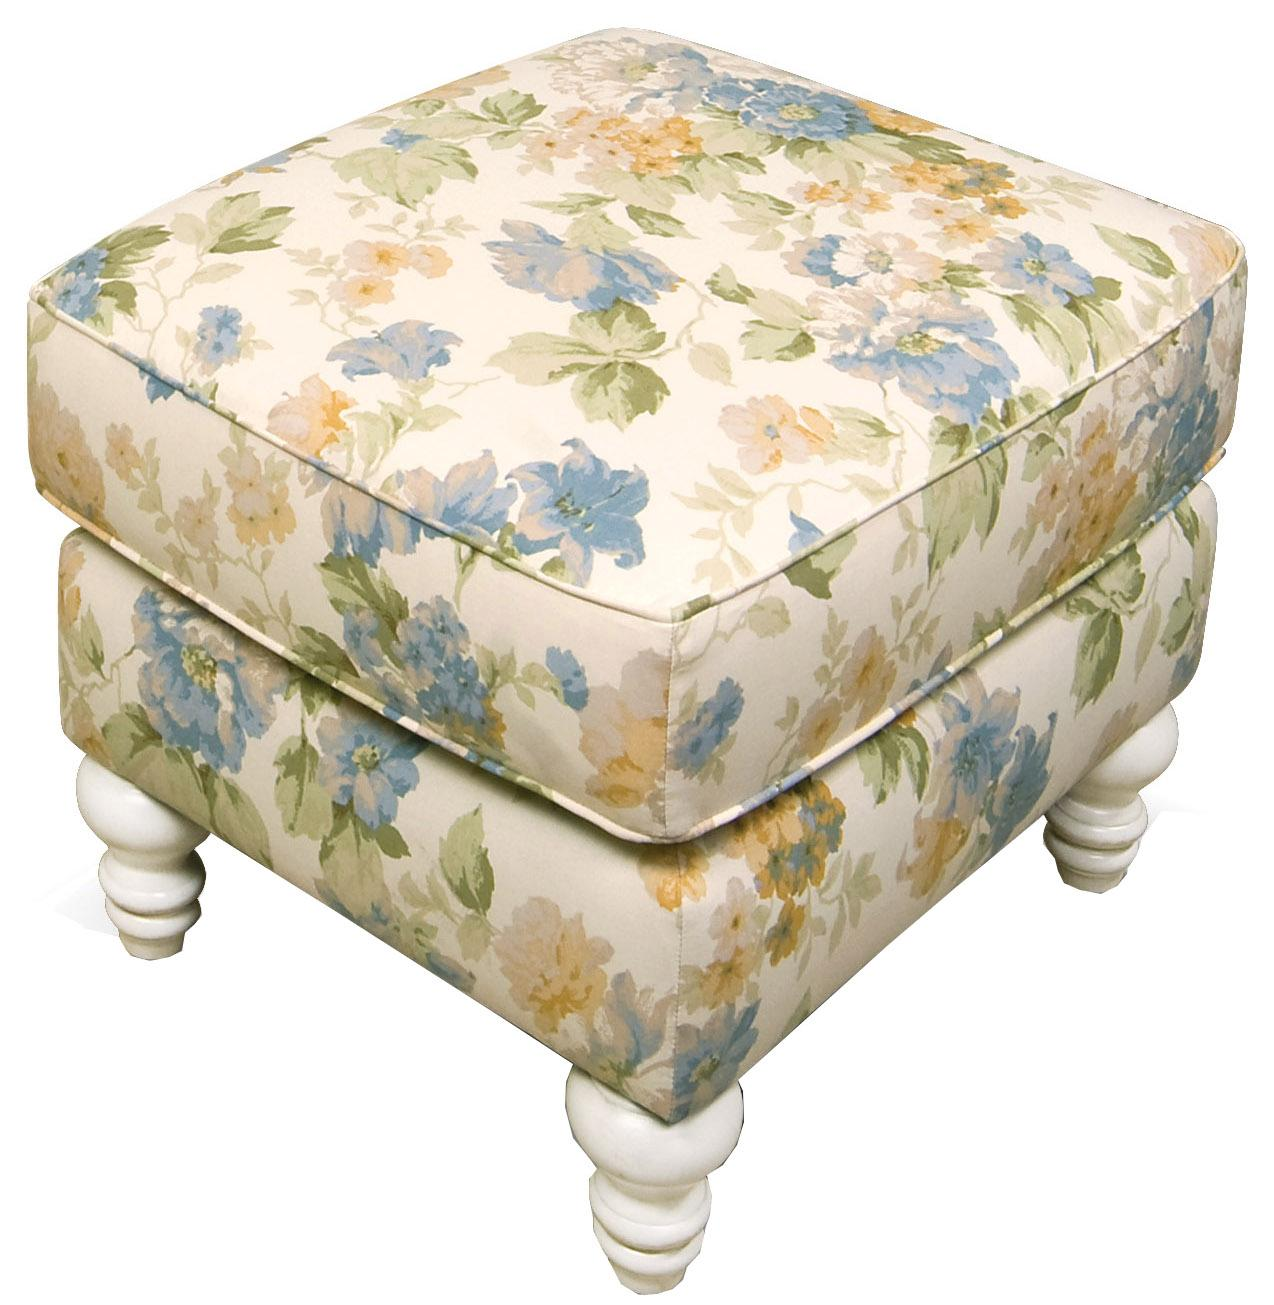 England Eliza Ottoman - Item Number: 637